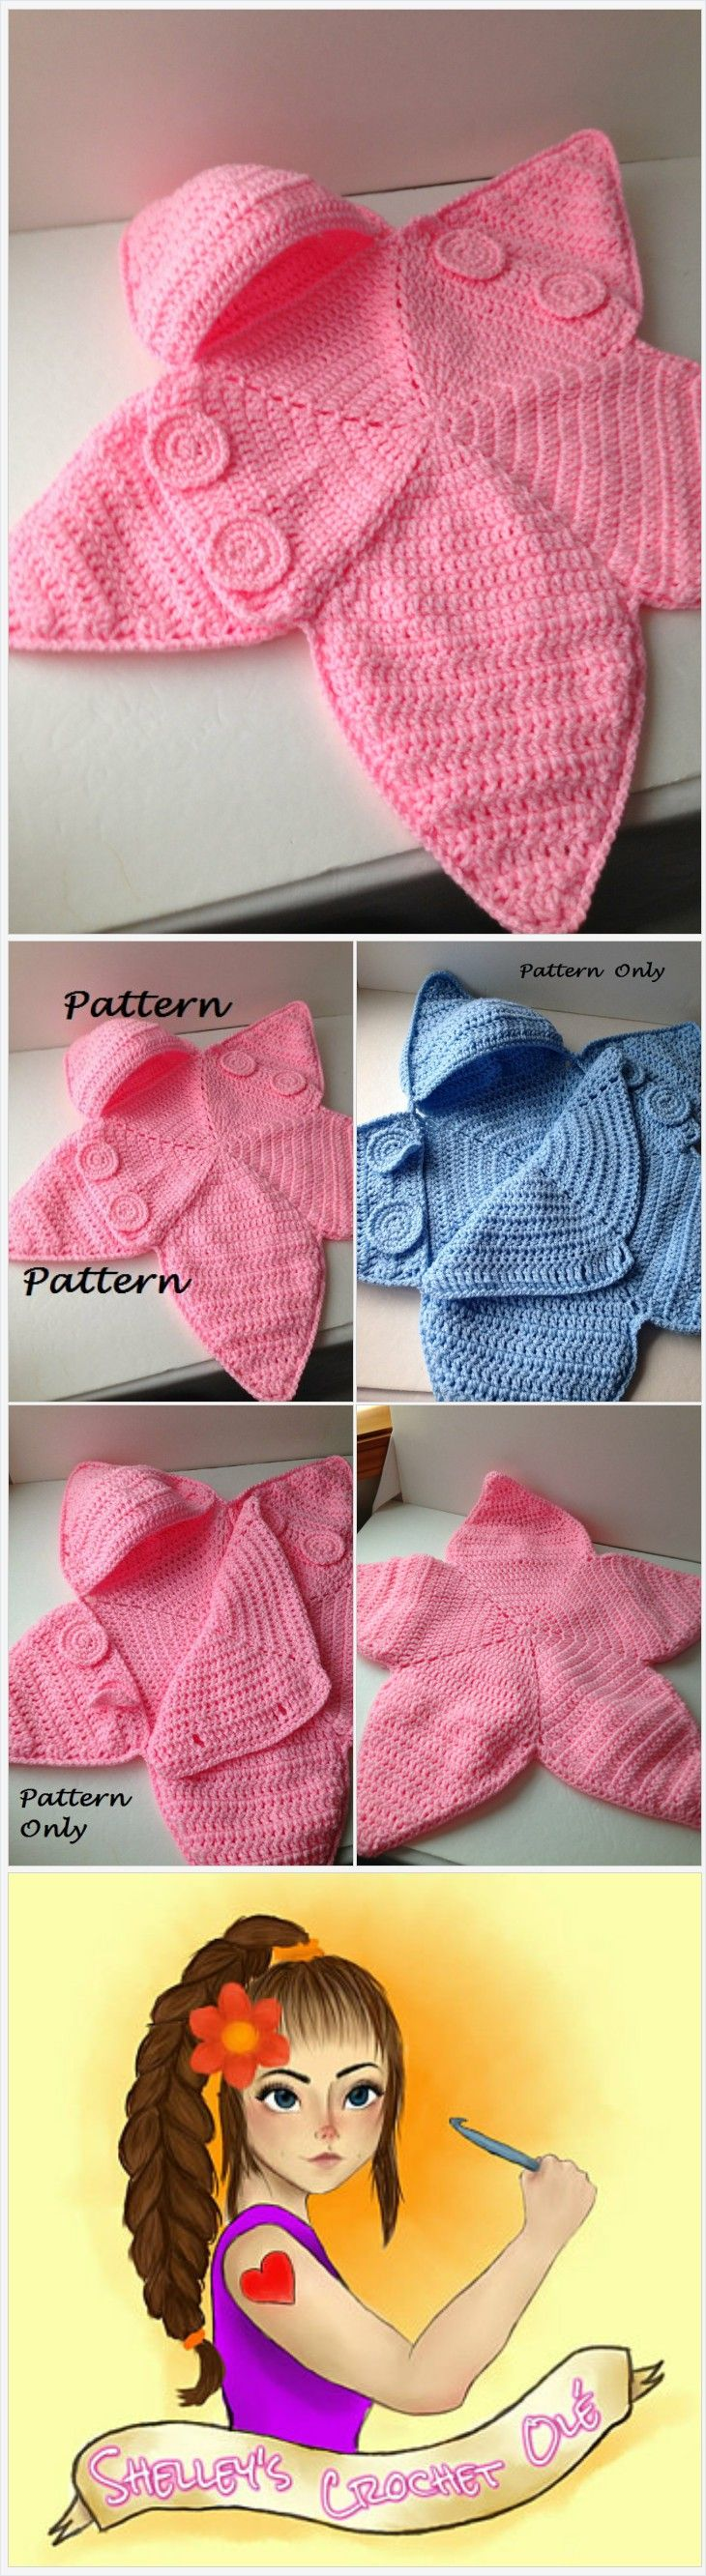 7 best battaniye images on Pinterest | Crochet patterns, Knit ...